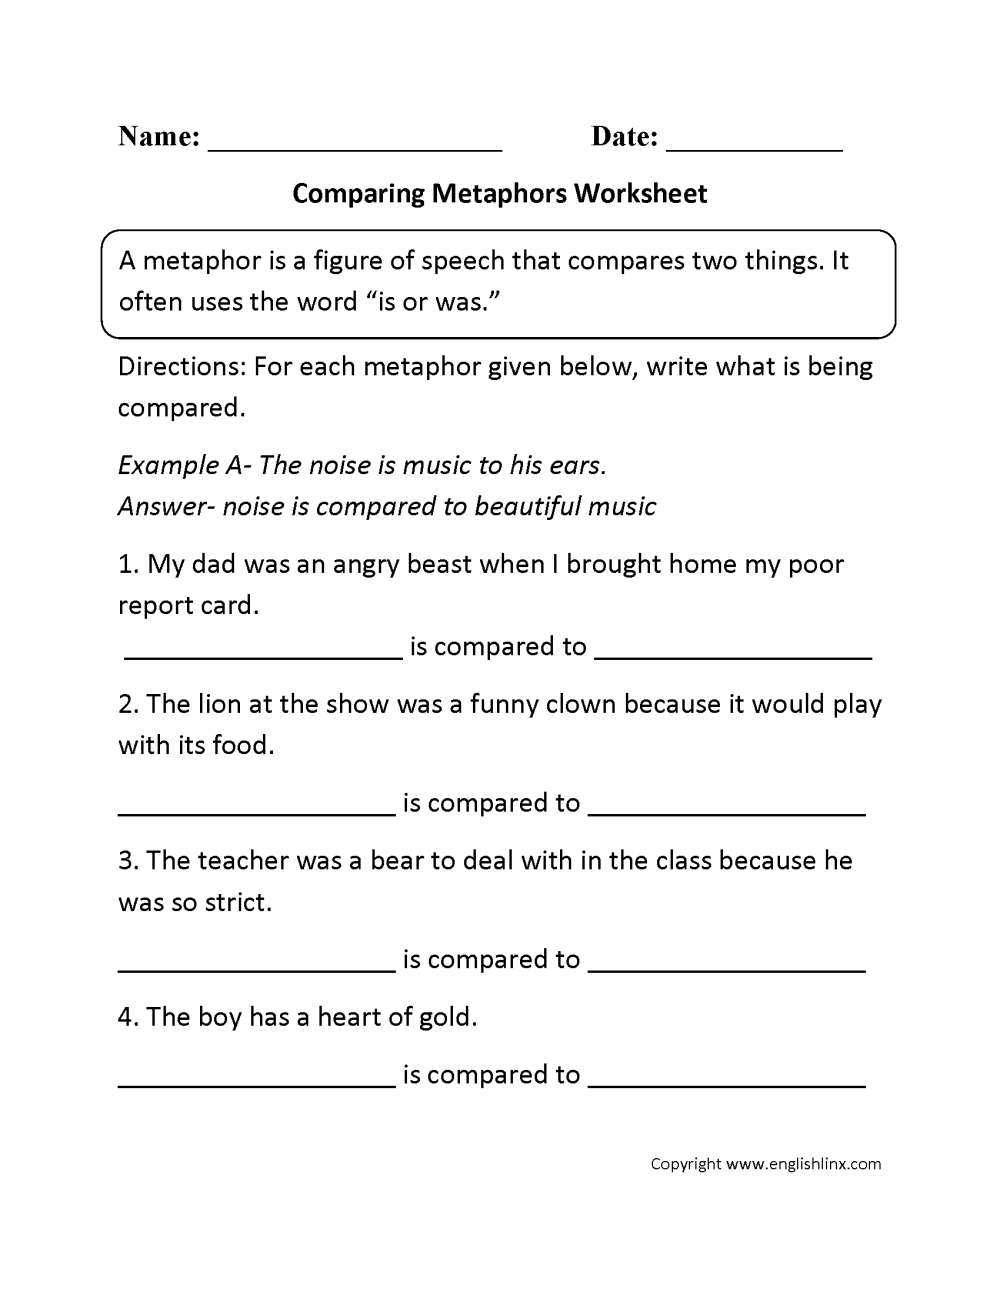 medium resolution of Metaphors Worksheets   Comparing Metaphors Worksheet